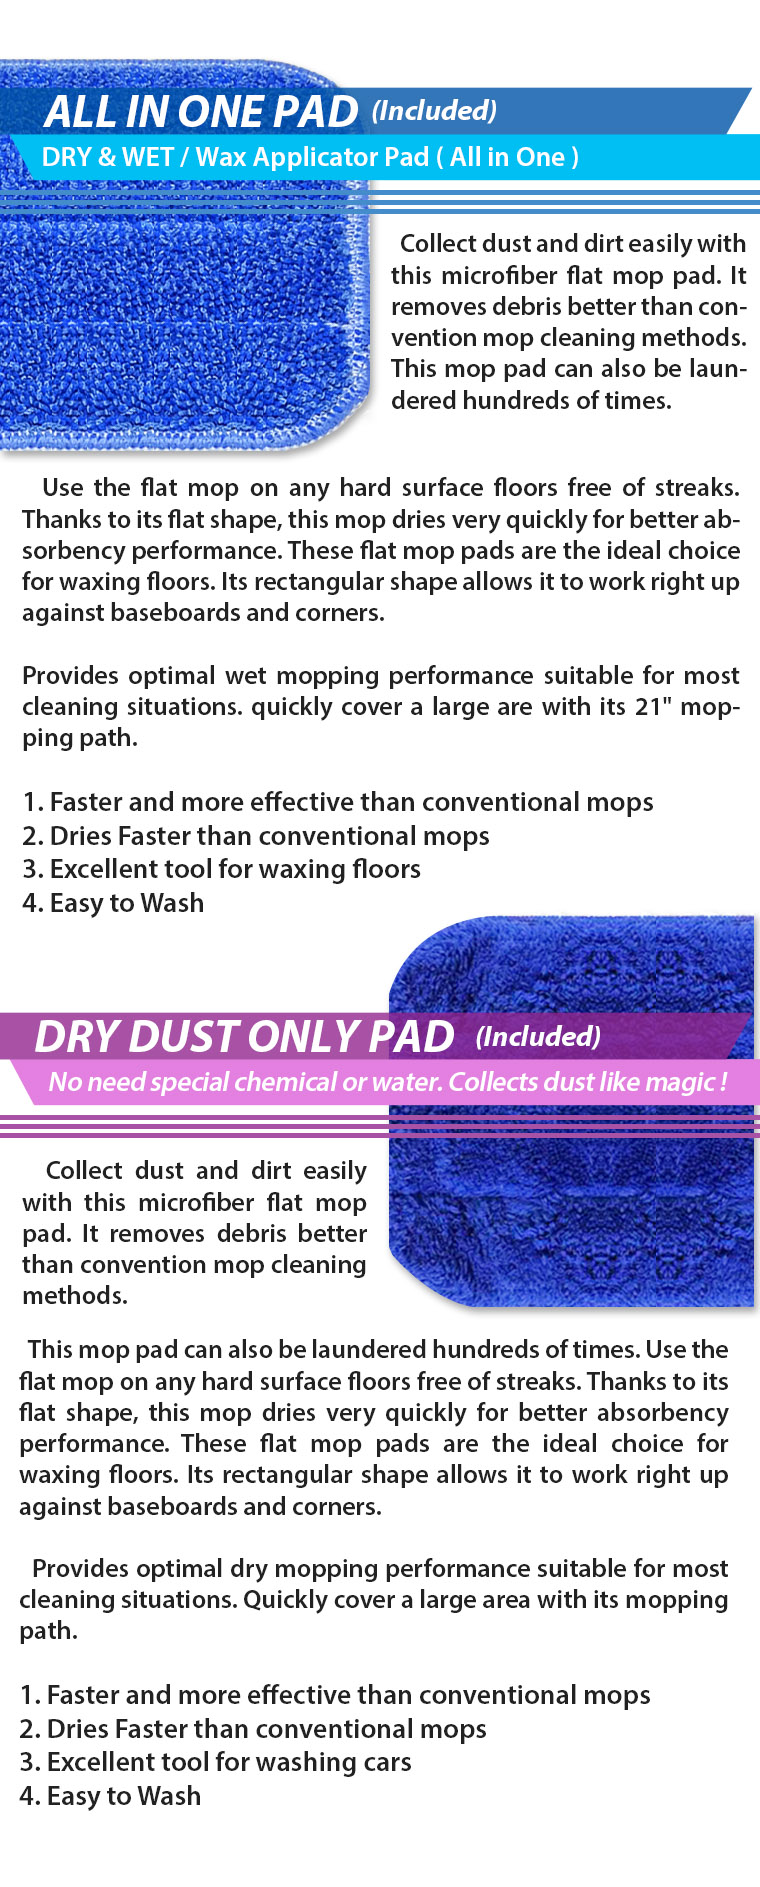 ALL IN ONE PAD(Included) DRY & WET / Wax Applicator Pad ( All in One ). Collect dust and dirt easily with this microfiber flat mop pad. It removes debris better than convention mop cleaning methods. This mop pad can also be laundered hundreds of times.   Use the flat mop on any hard surface floors free of streaks. Thanks to its flat shape, this mop dries very quickly for better absorbency performance. These flat mop pads are the ideal choice for waxing floors. Its rectangular shape allows it to work right up against baseboards and corners. Provides optimal wet mopping performance suitable for most cleaning situations. quickly cover a large are with its 21 inch mopping path. 1. Faster and more effective than conventional mops 2. Dries Faster than conventional mops 3. Excellent tool for waxing floors 4. Easy to Wash